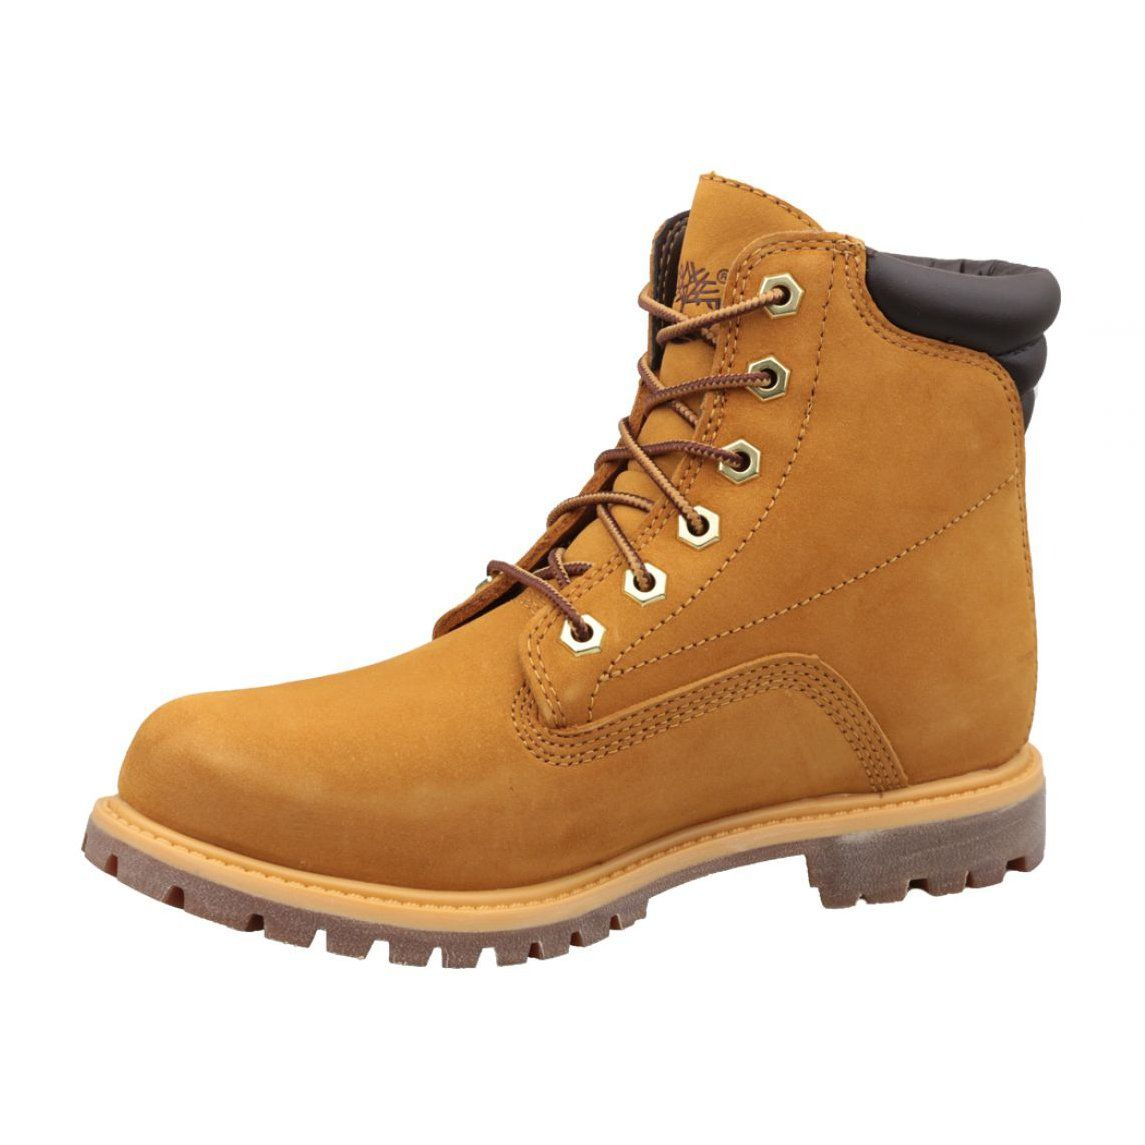 Buty Zimowe Timberland Waterville 6 In Basic W 8168r Brazowe Timberland Shoes Women Boots Winter Boots